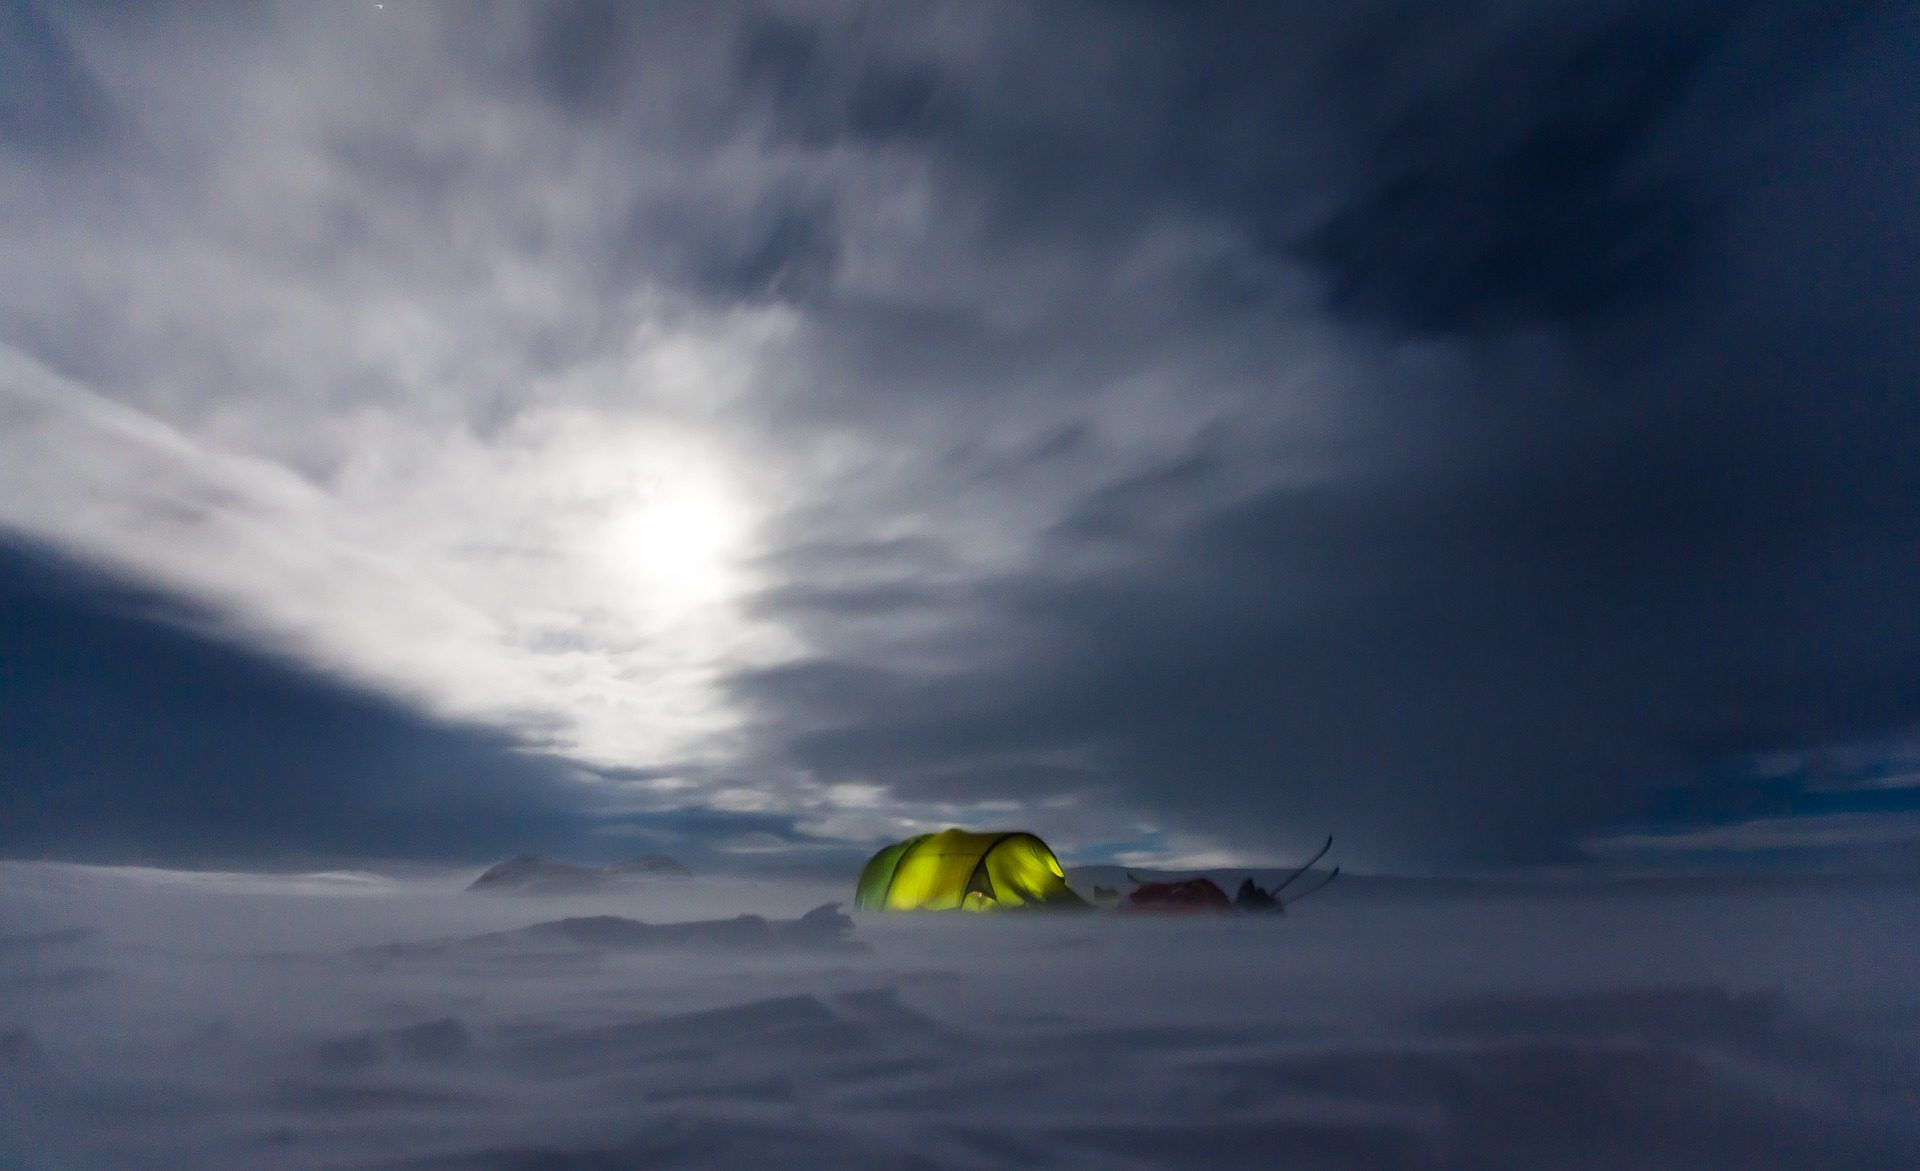 Winter Camping and Biking